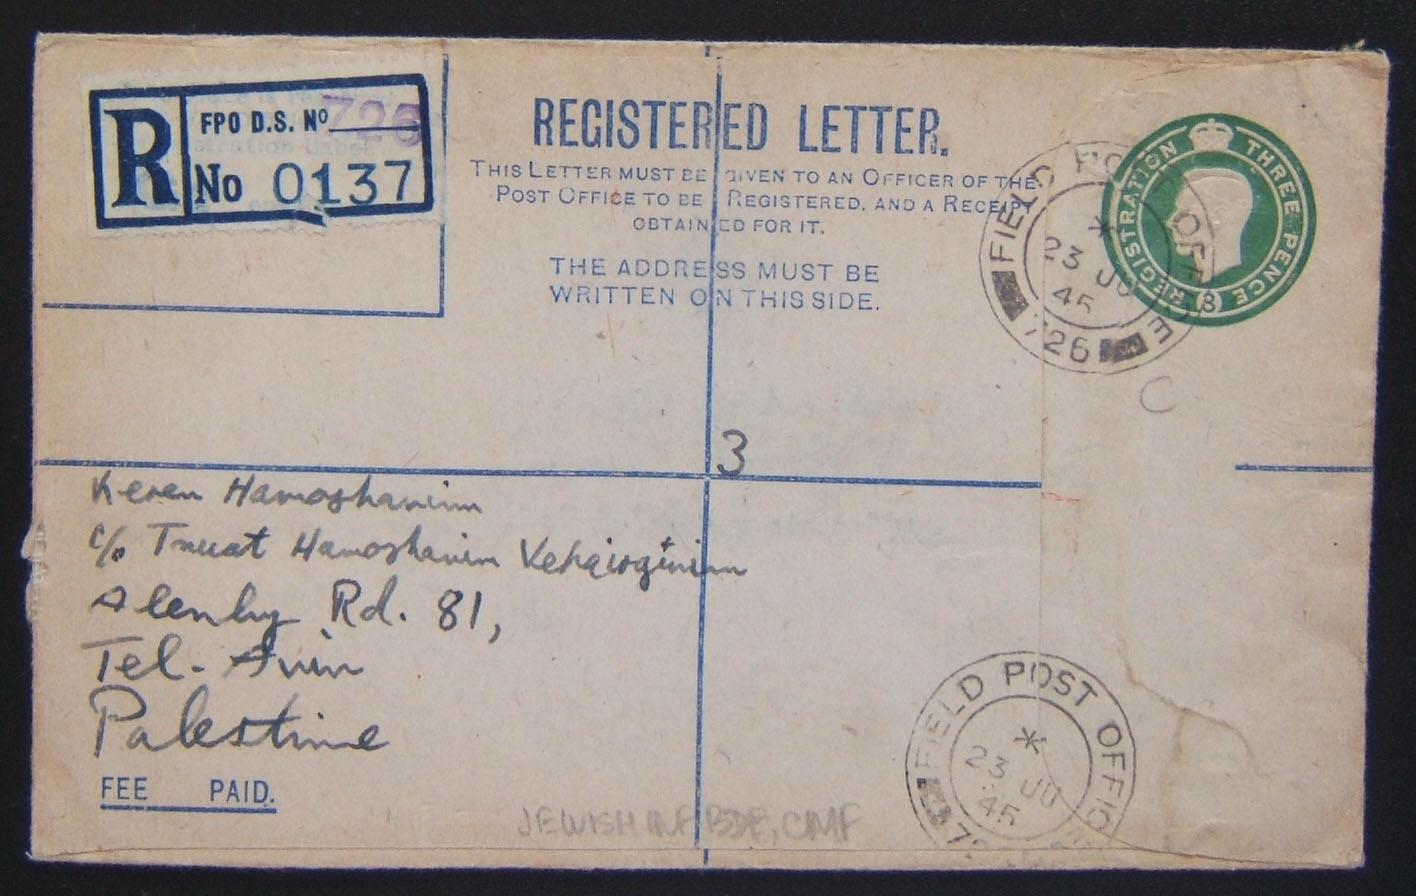 Jewish Brigade mail: 1939/44 British Army 3d KGVI registration envelope (Ba BF.02 B1) ex FPO 726 (Italy; 2 strikes) to credit institute in TEL AVIV, 23 JU 45; R label assigned to 7